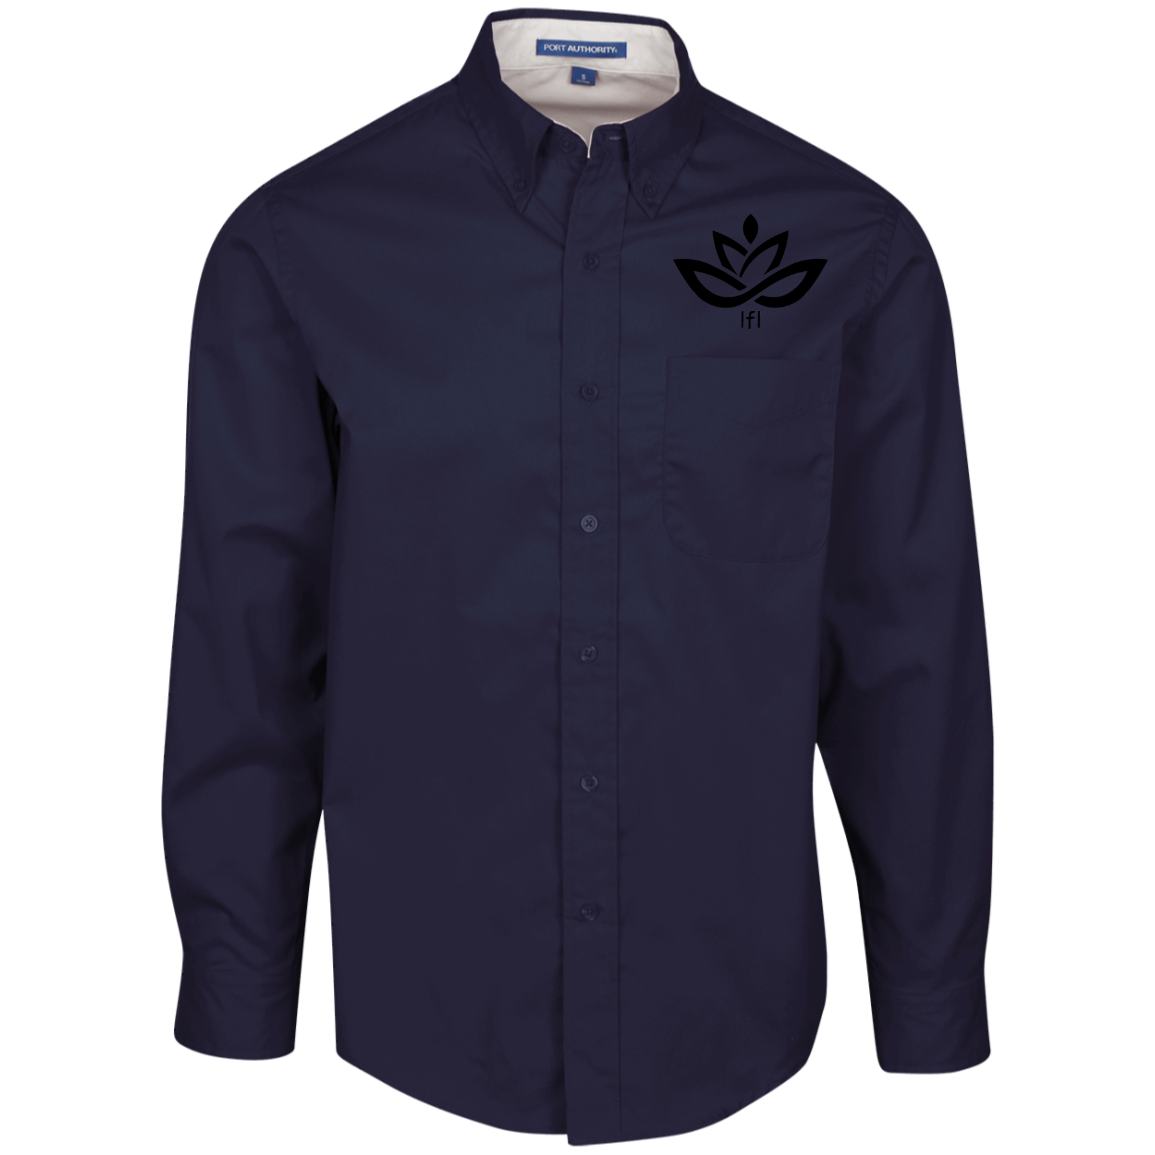 S608 Men's LS Dress Shirt